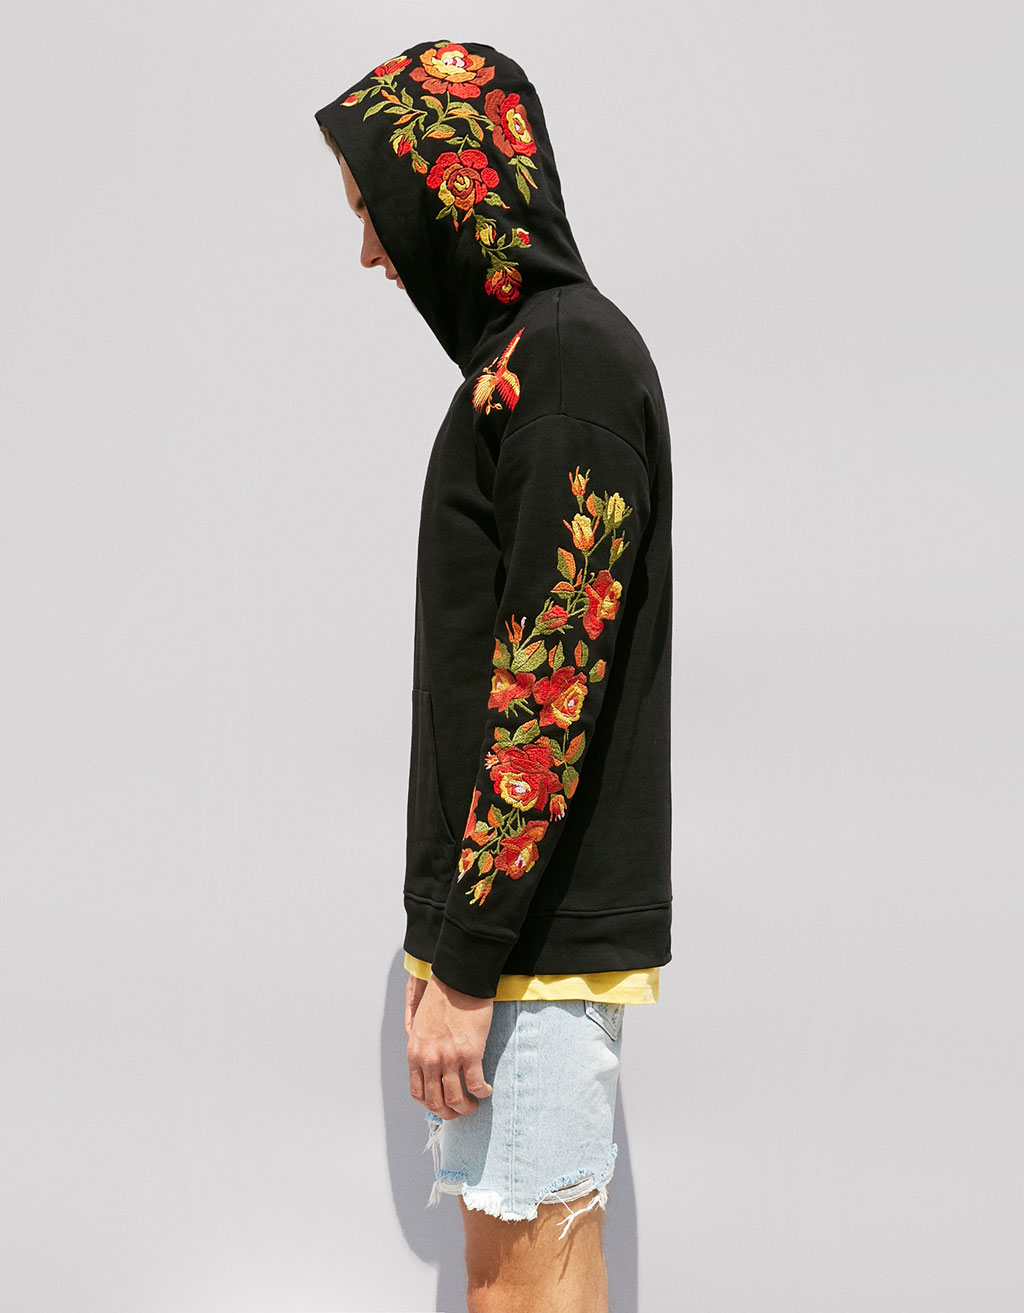 Hooded plush jersey sweatshirt with floral embroidery